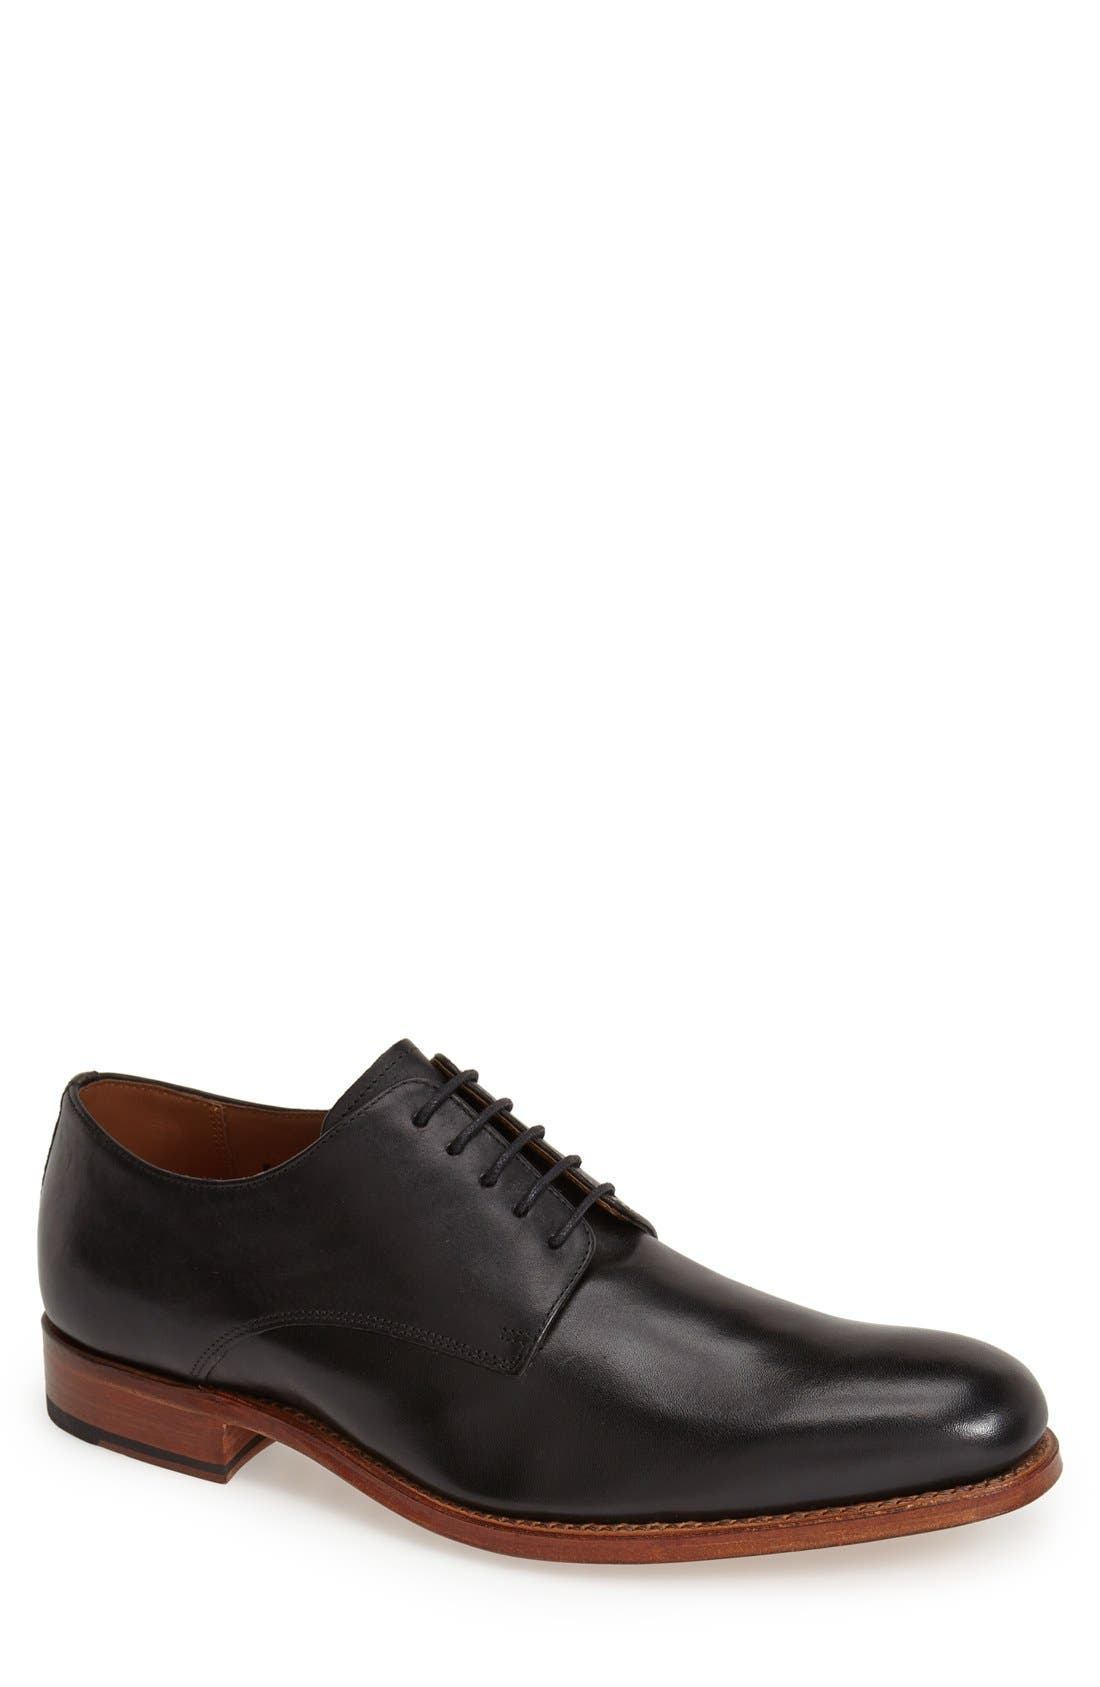 GRENSON,                             'Toby' Leather Plain Toe Derby,                             Main thumbnail 1, color,                             001